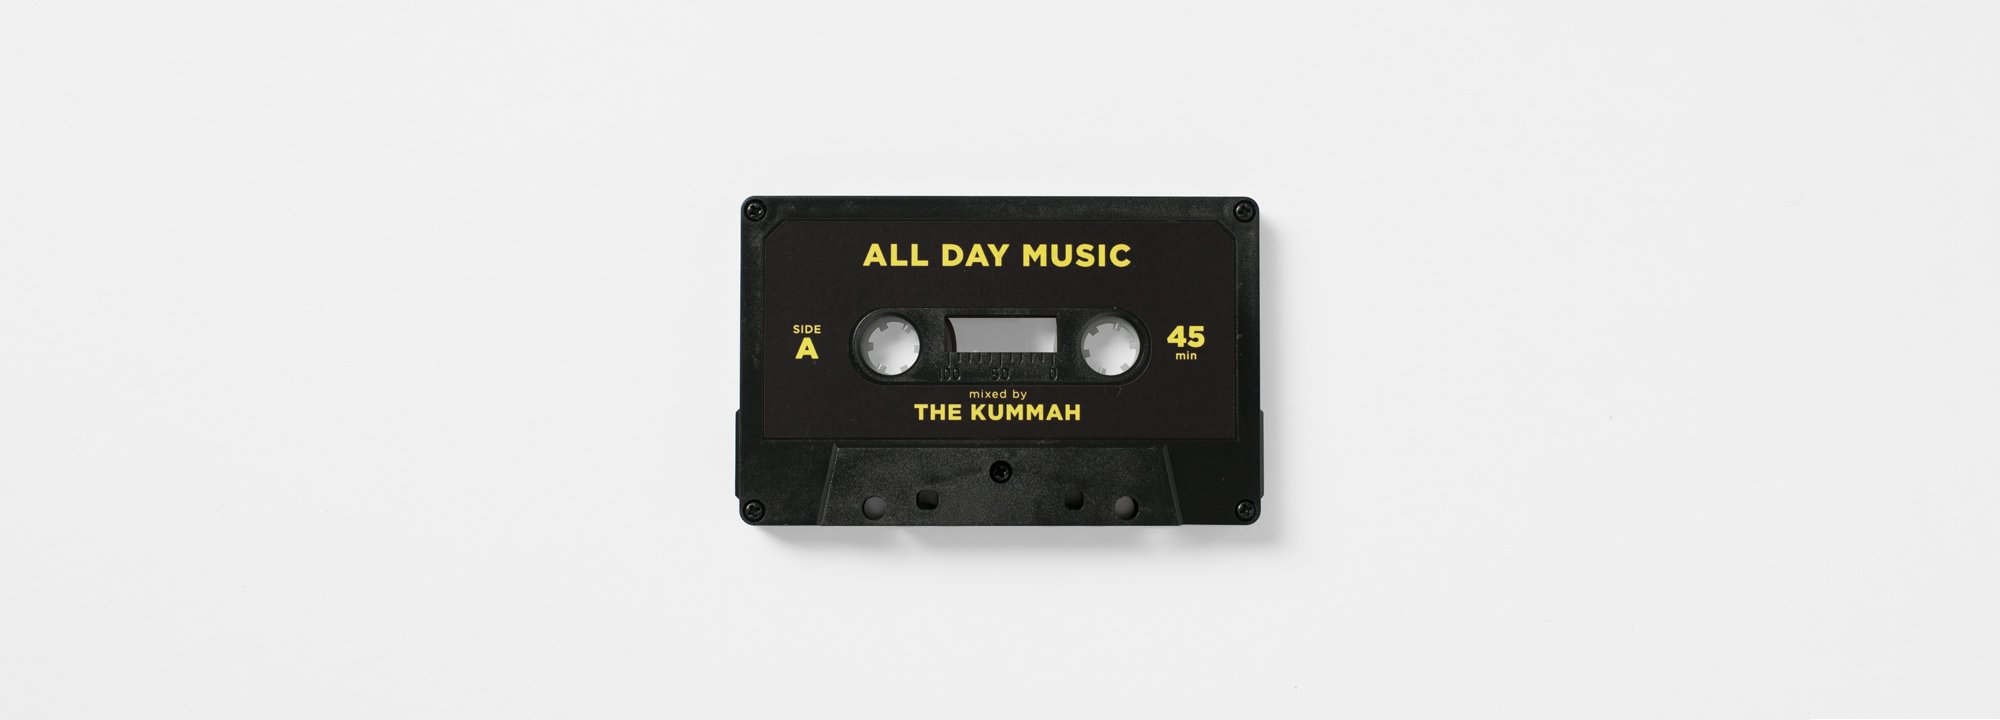 """ALL DAY MUSIC #3"" Mixed by THE KUMMAH"